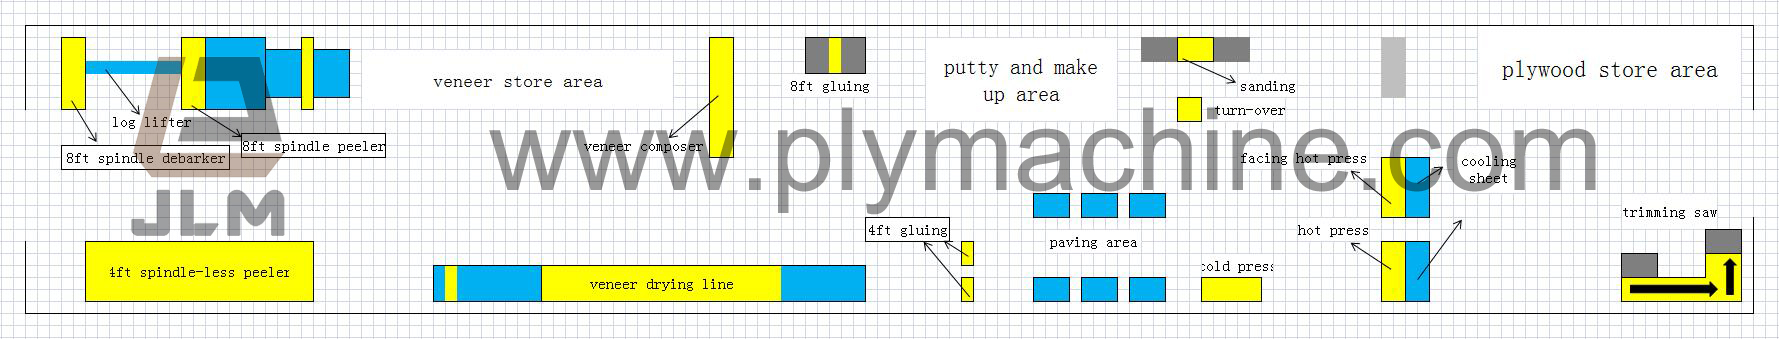 Plywood-factory-layout